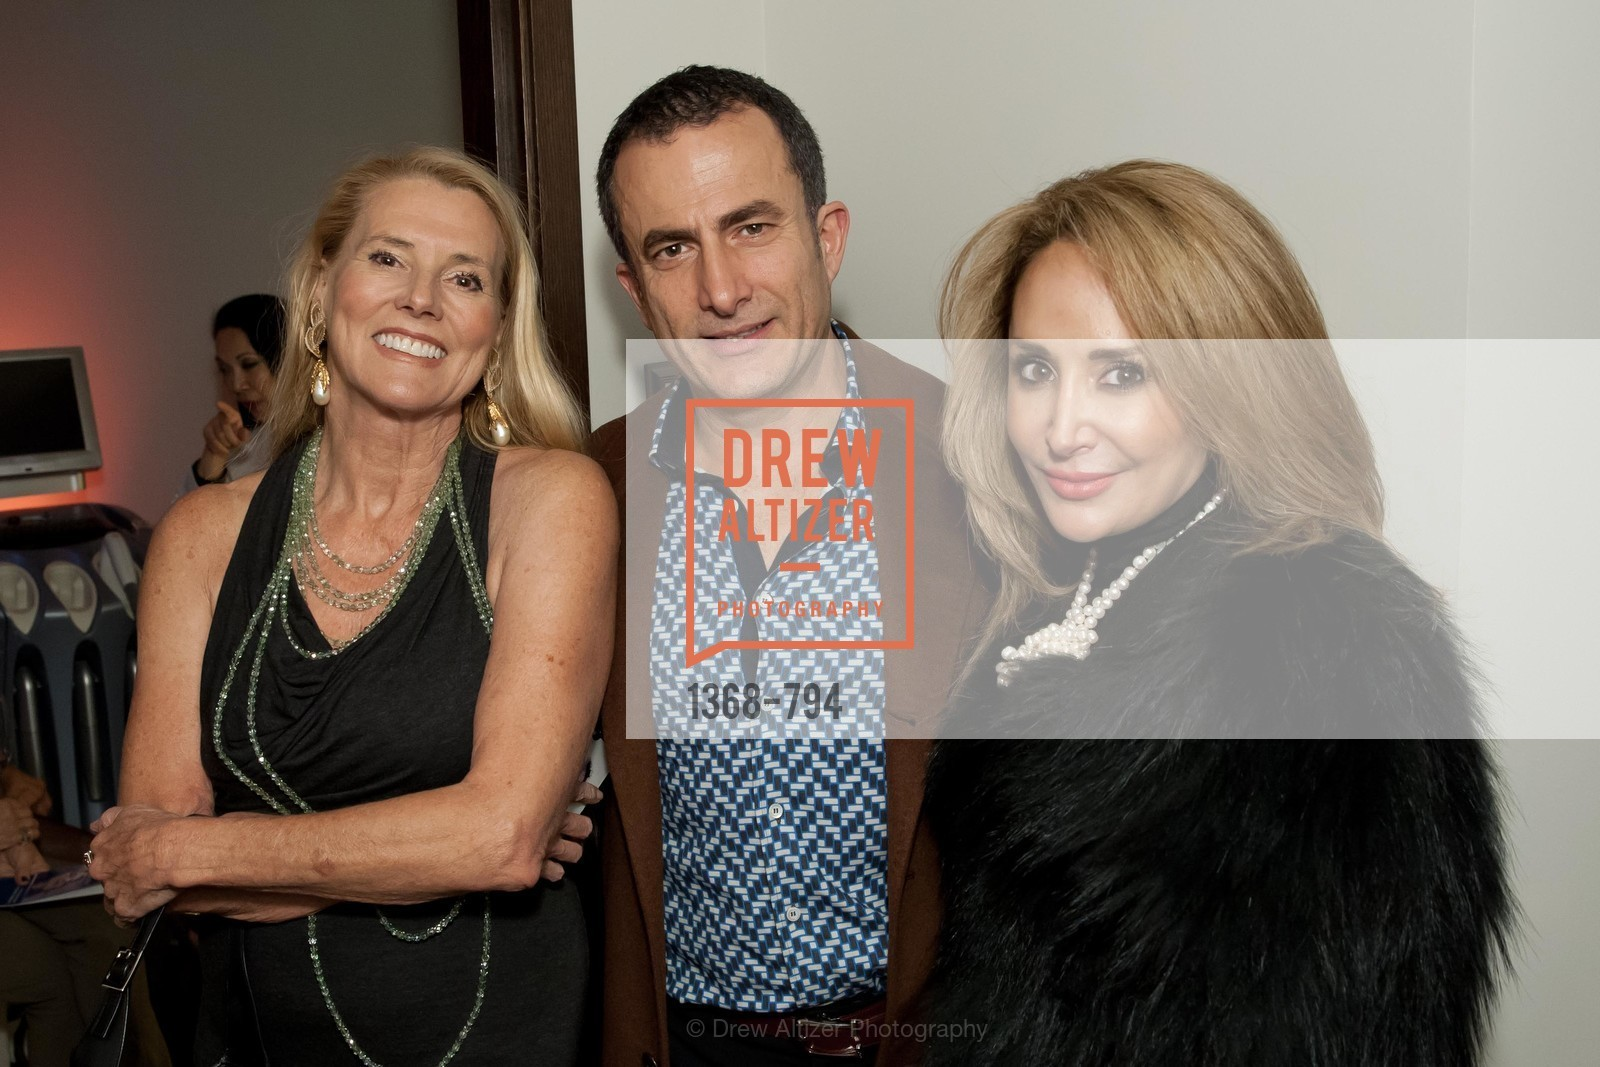 Christina DeLimur, Jorge Maumer, Brenda Zarate, EPI CENTER MedSpa Anniversary and Launch of REPLETE - Evening Celebration, US, April 21st, 2015,Drew Altizer, Drew Altizer Photography, full-service agency, private events, San Francisco photographer, photographer california